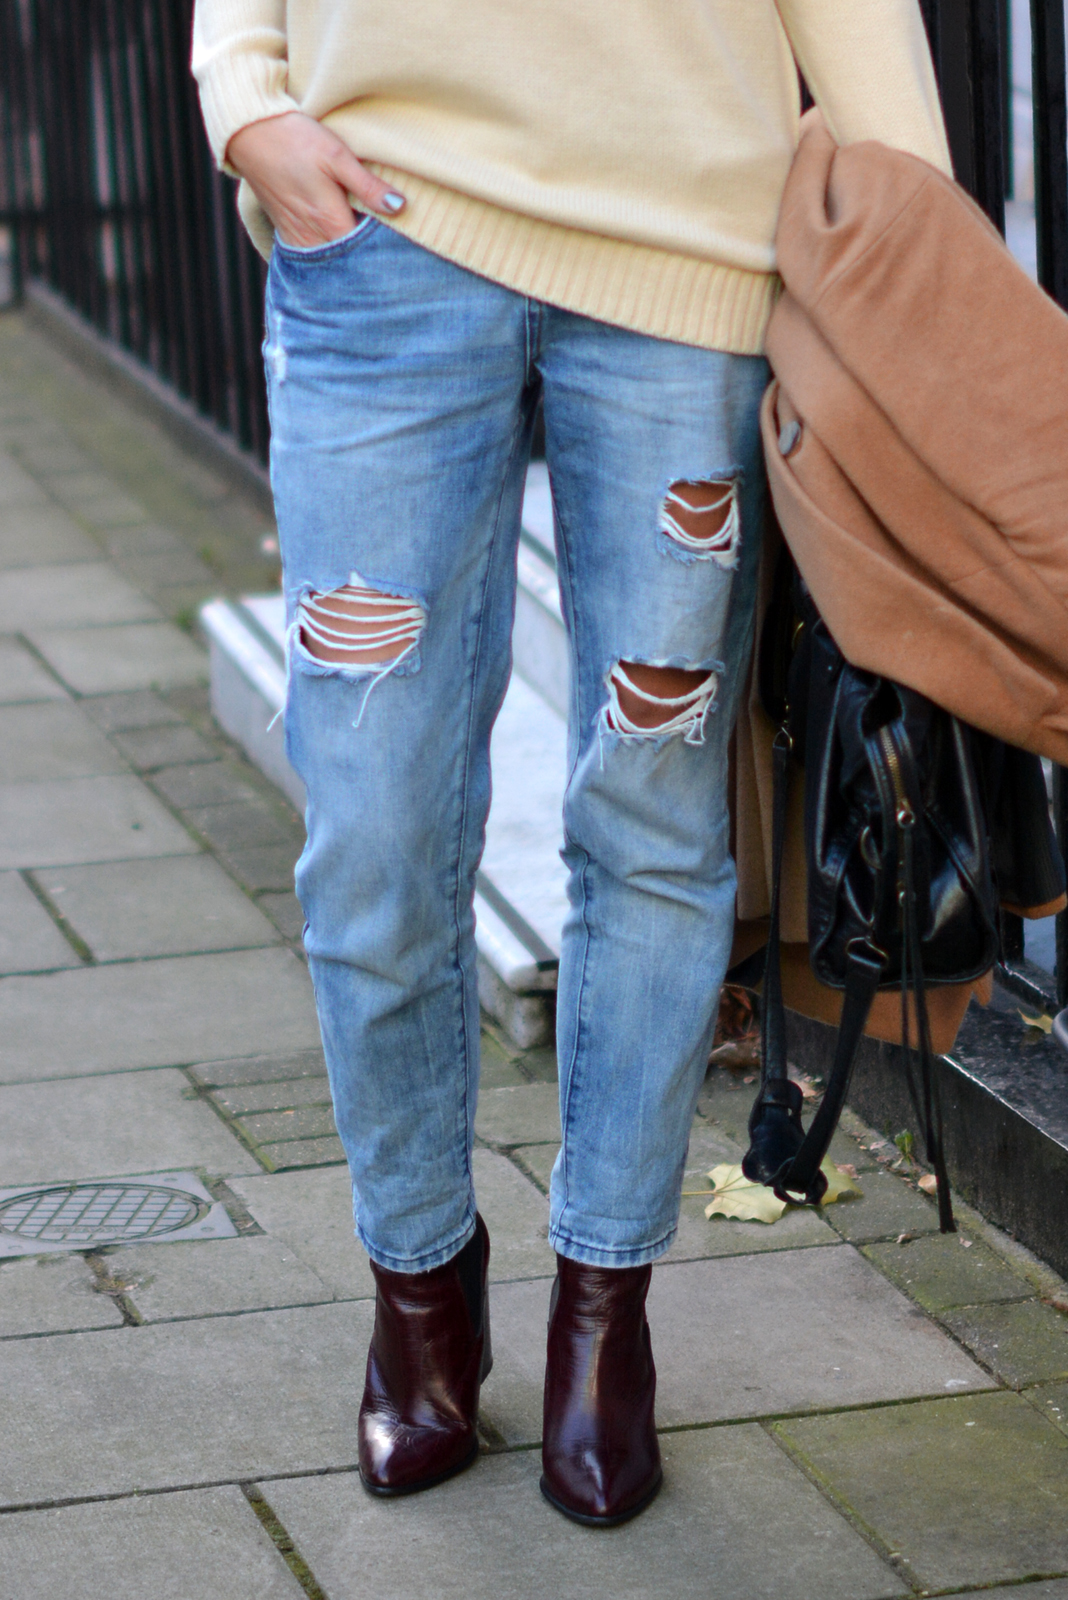 EJSTYLE - New Look ripped boyfriend jeans, River Island wine croc boots, Balenciaga city bag